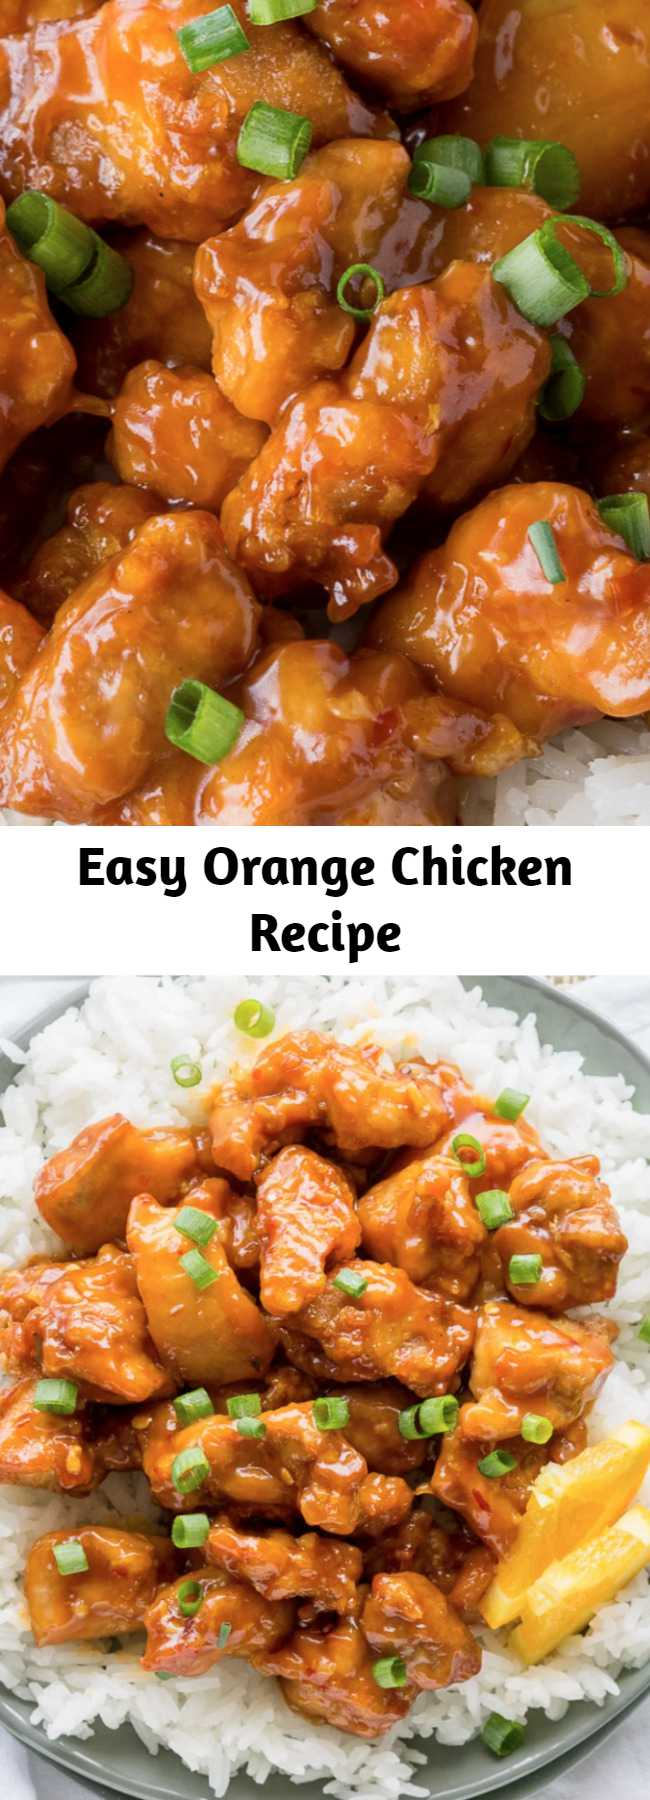 Easy Orange Chicken Recipe - If you're a fan of the famous Panda Express Orange Chicken, then this homemade version is going to bring a smile to your face. This is the BEST Orange Chicken Recipe on the internet!